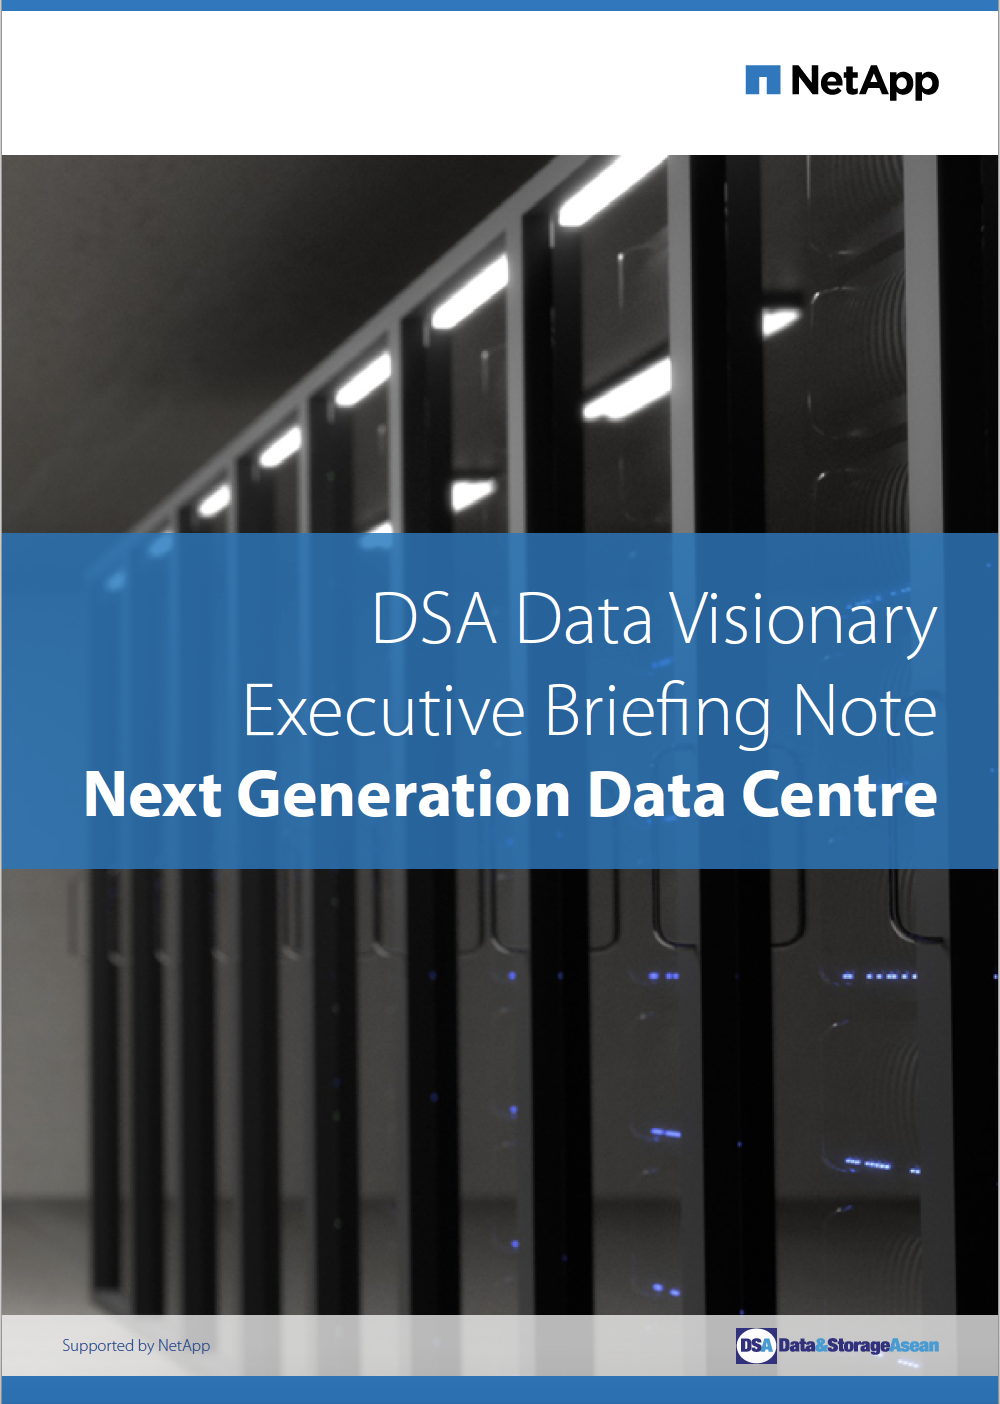 DSA Data Visionary Executive Briefing Note - Next Generation Centre.pdf